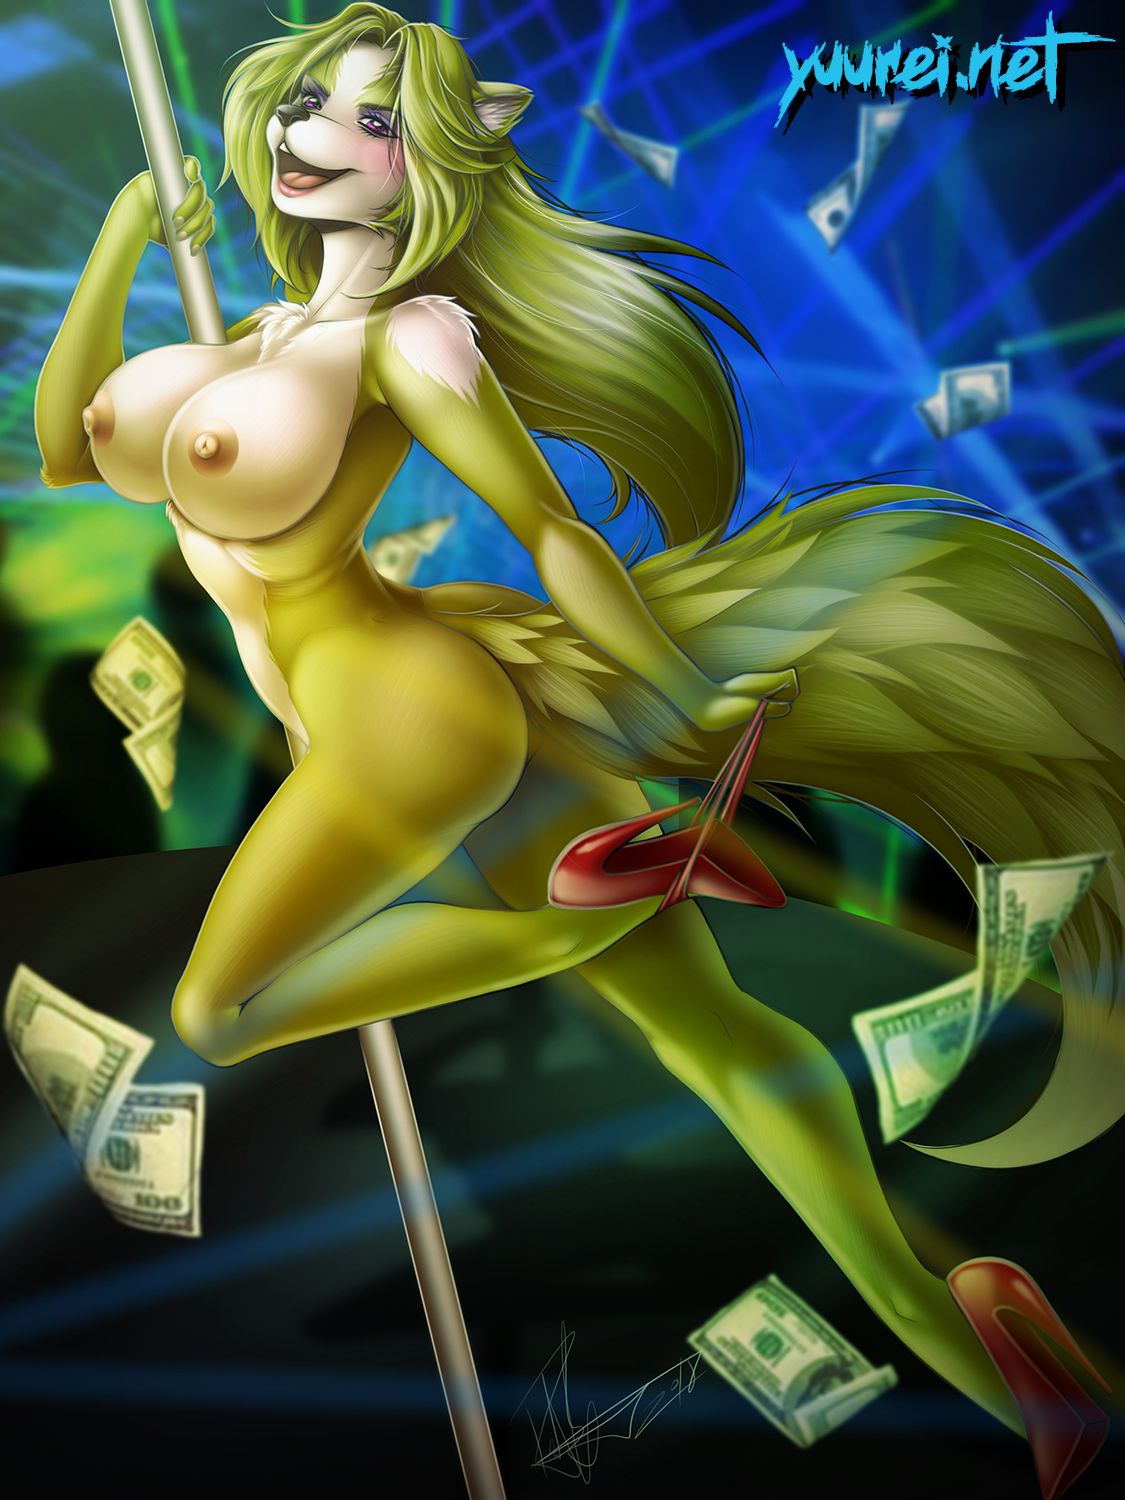 Zelaest YCH (nude version)